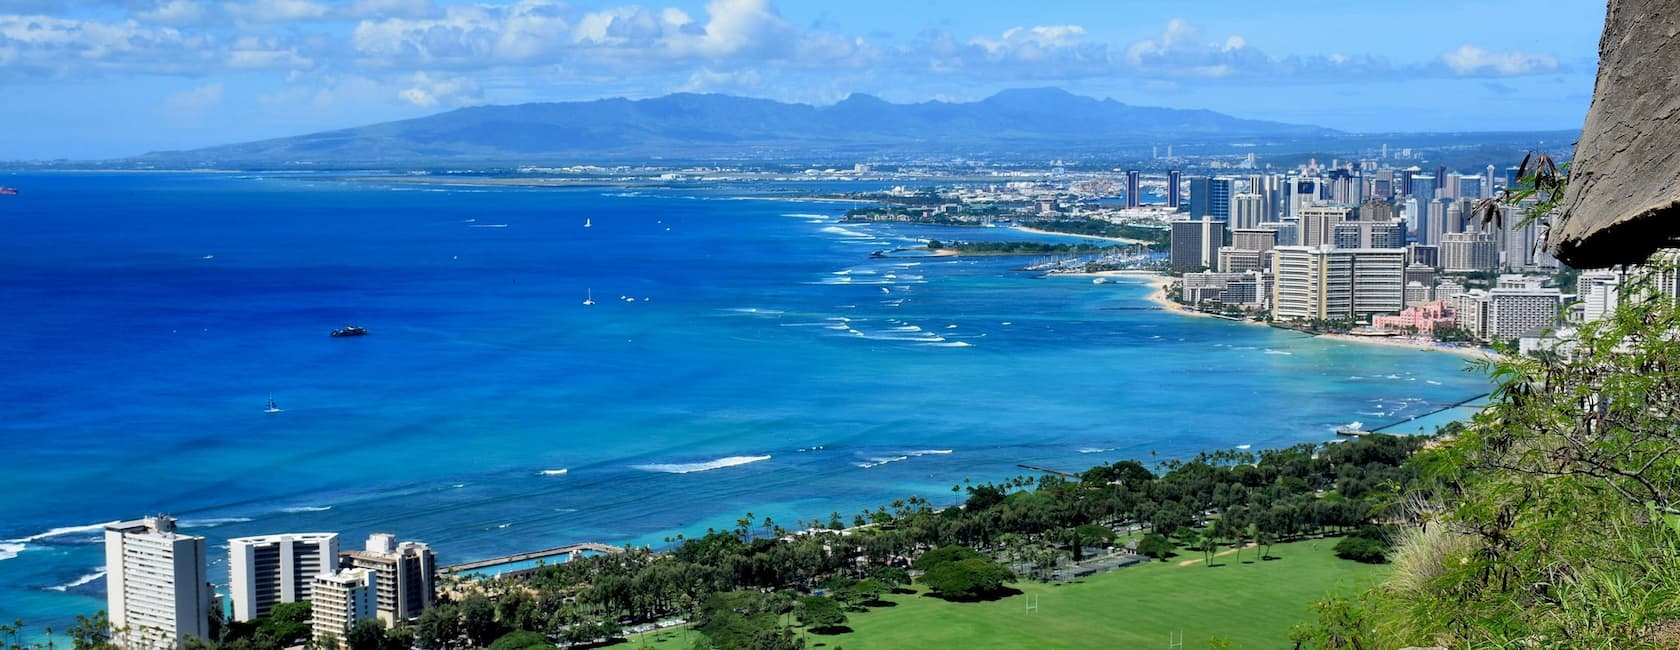 Vacation rentals in Honolulu